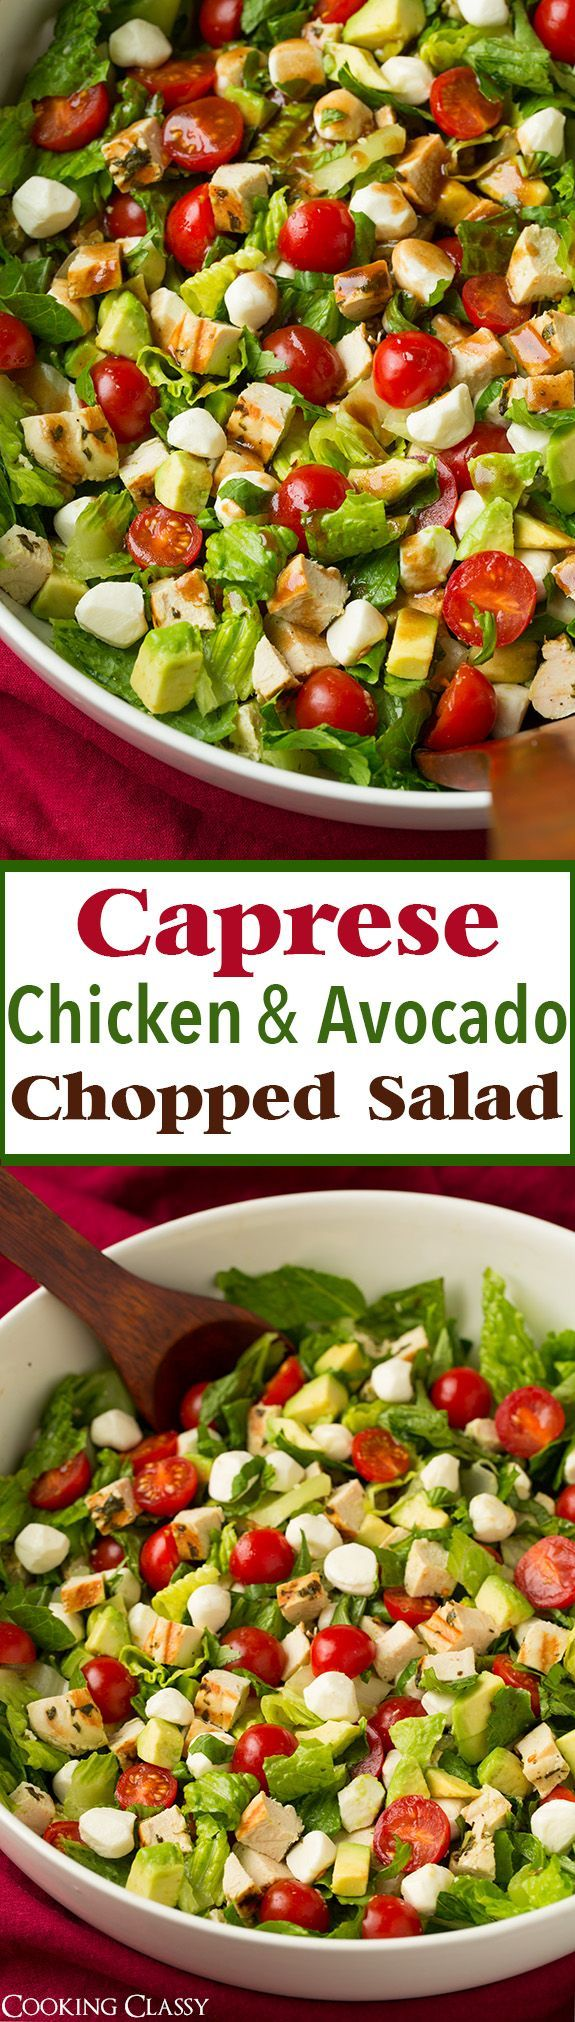 Caprese Chicken and Avocado Chopped Salad - this salad is SERIOUSLY DELICOUS!! Can't wait to make it again!